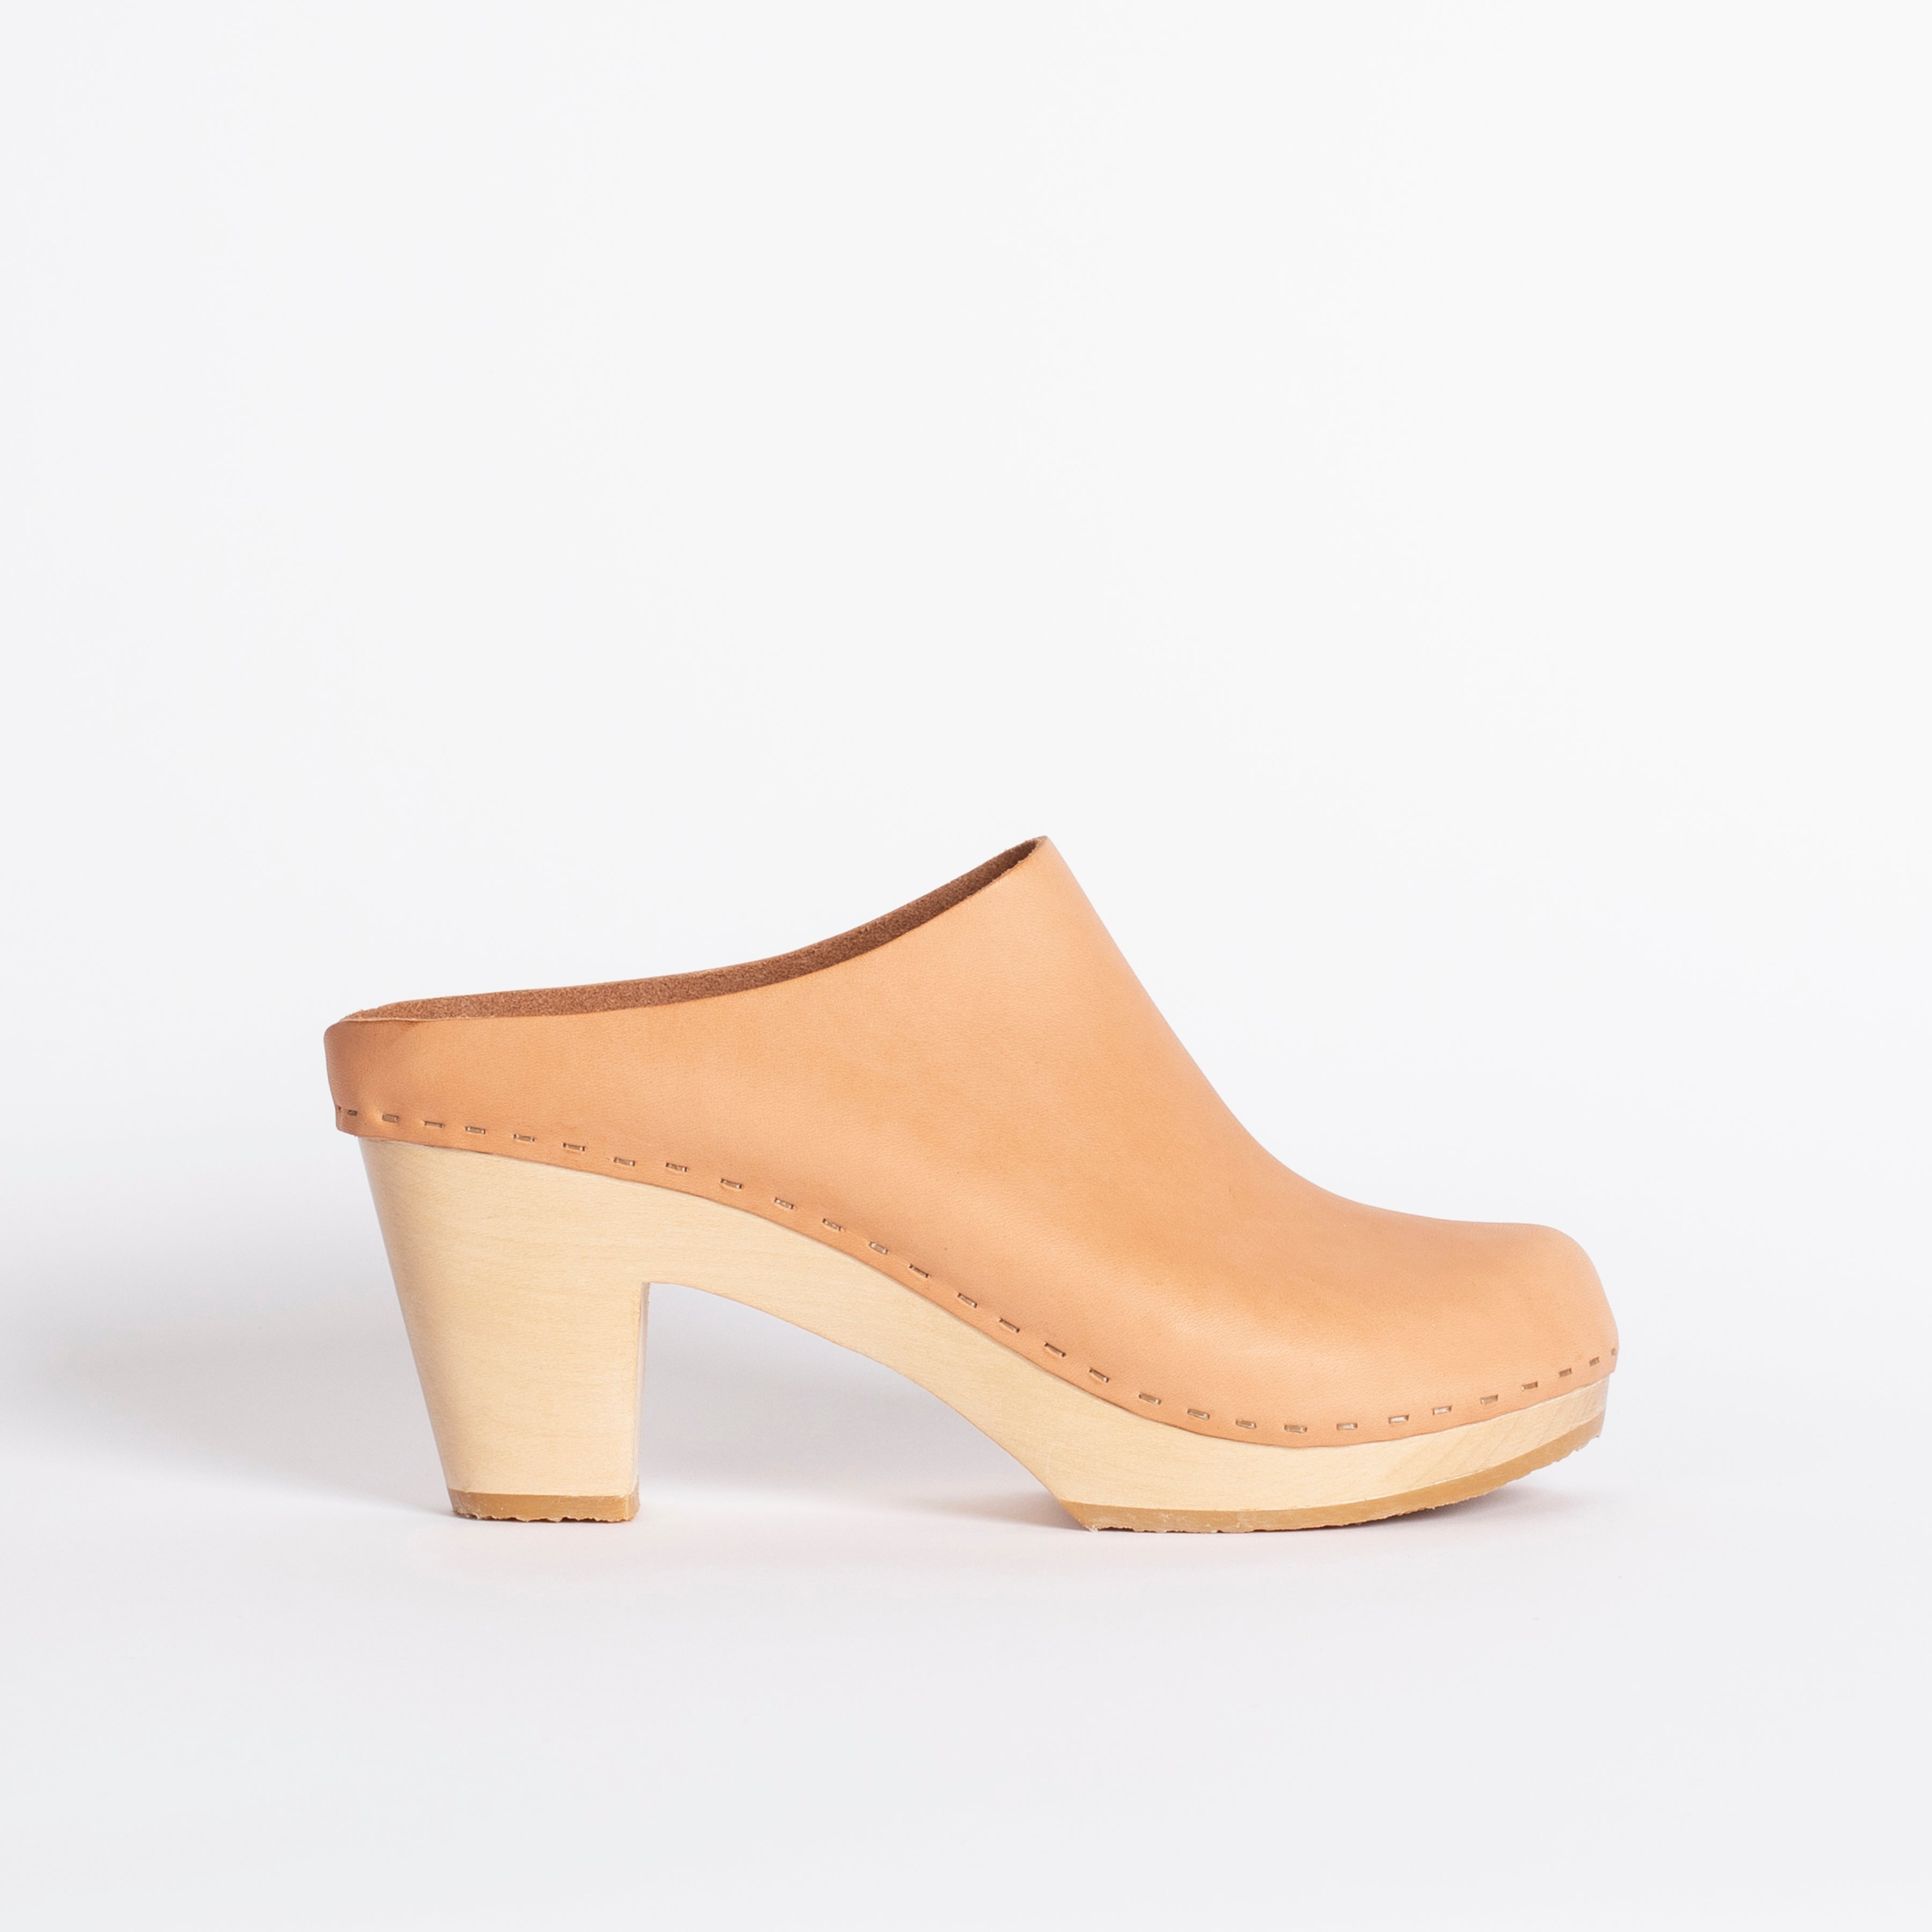 Chloe clog, Natural leather